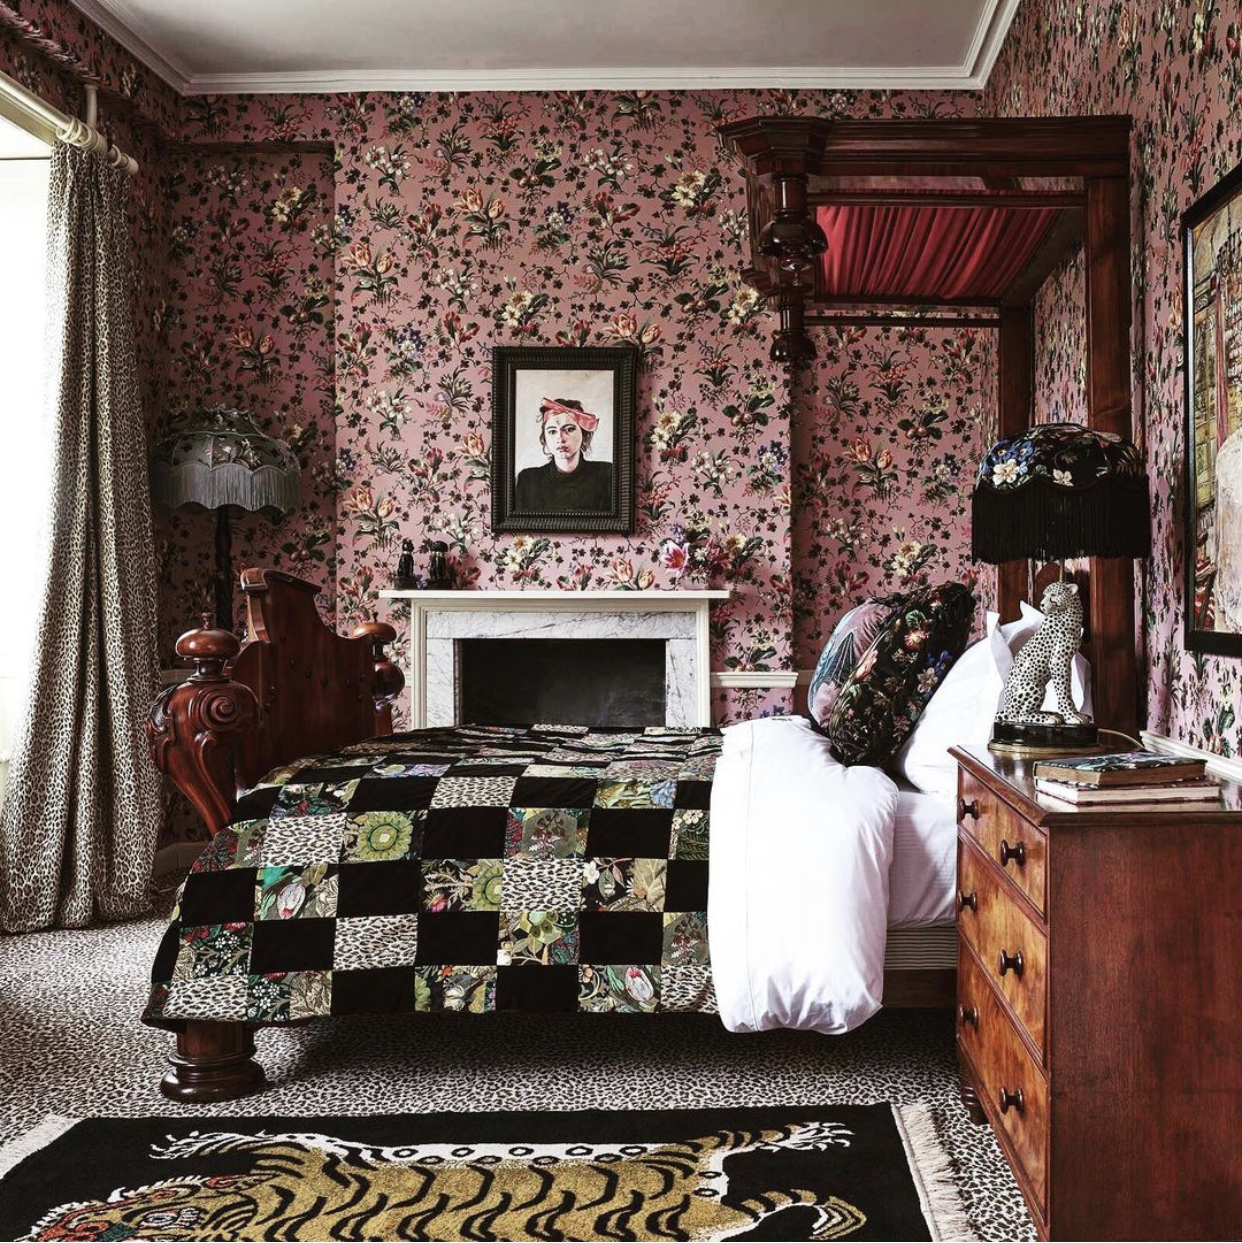 wallpaper by house of hackney